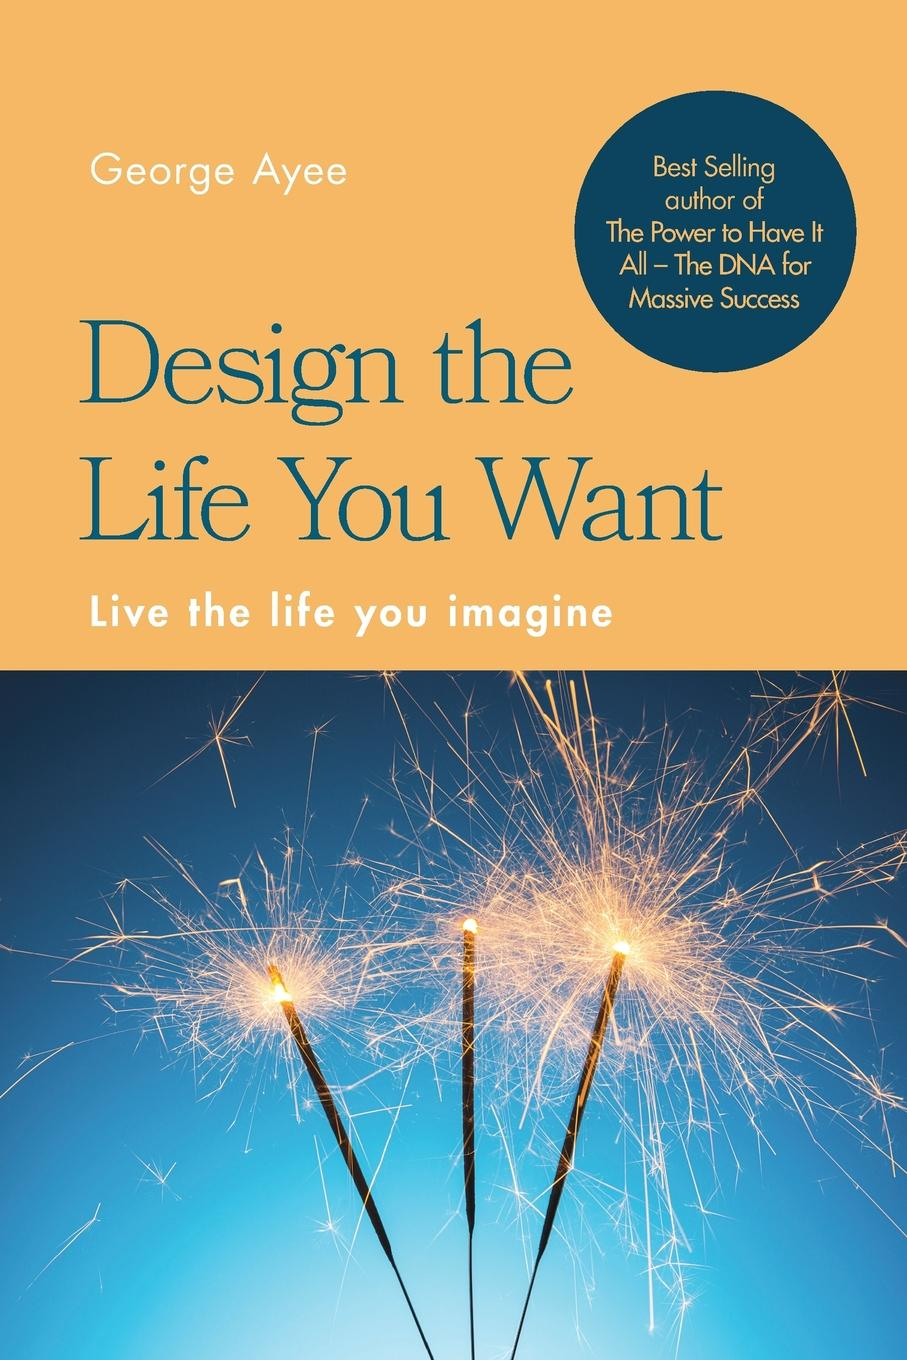 George Ayee Design the Life You Want. Live the life you imagine richard bandler get the life you want